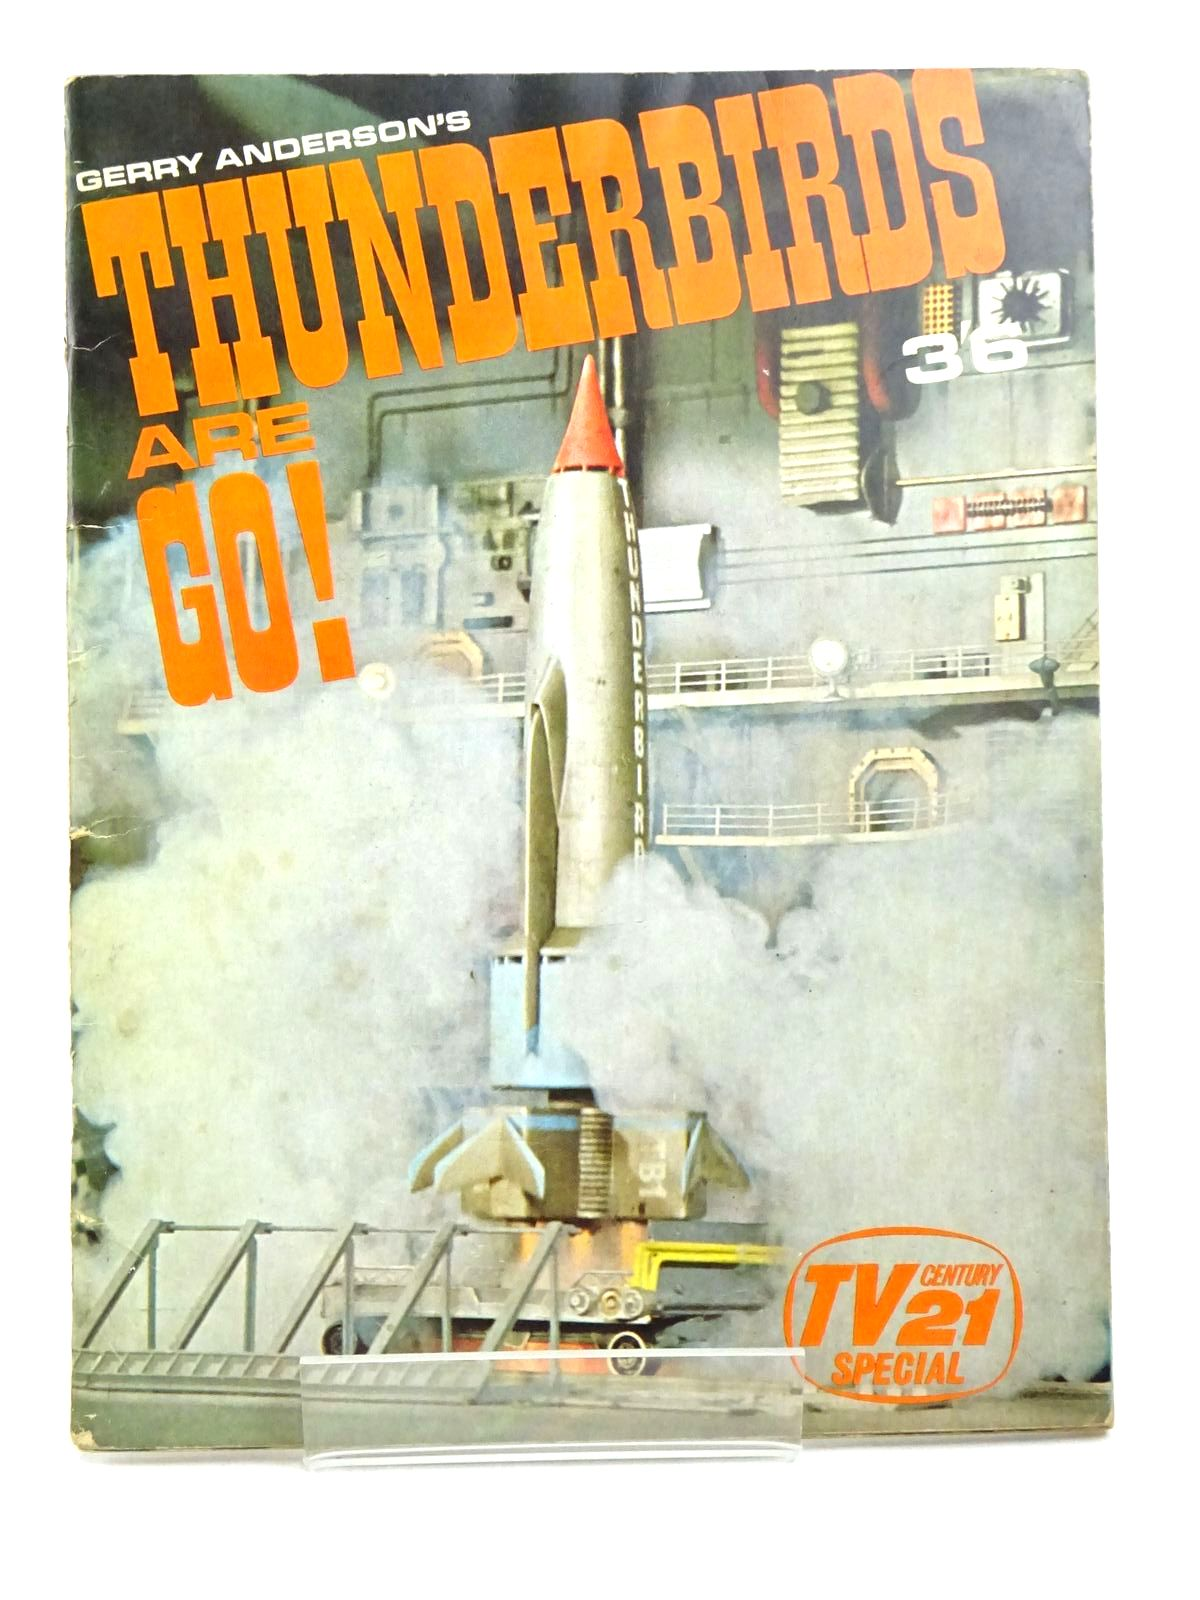 Photo of GERRY ANDERSON'S THUNDERBIRDS ARE GO! published by Century 21 Publishing Ltd., City Magazines Ltd. (STOCK CODE: 1317999)  for sale by Stella & Rose's Books